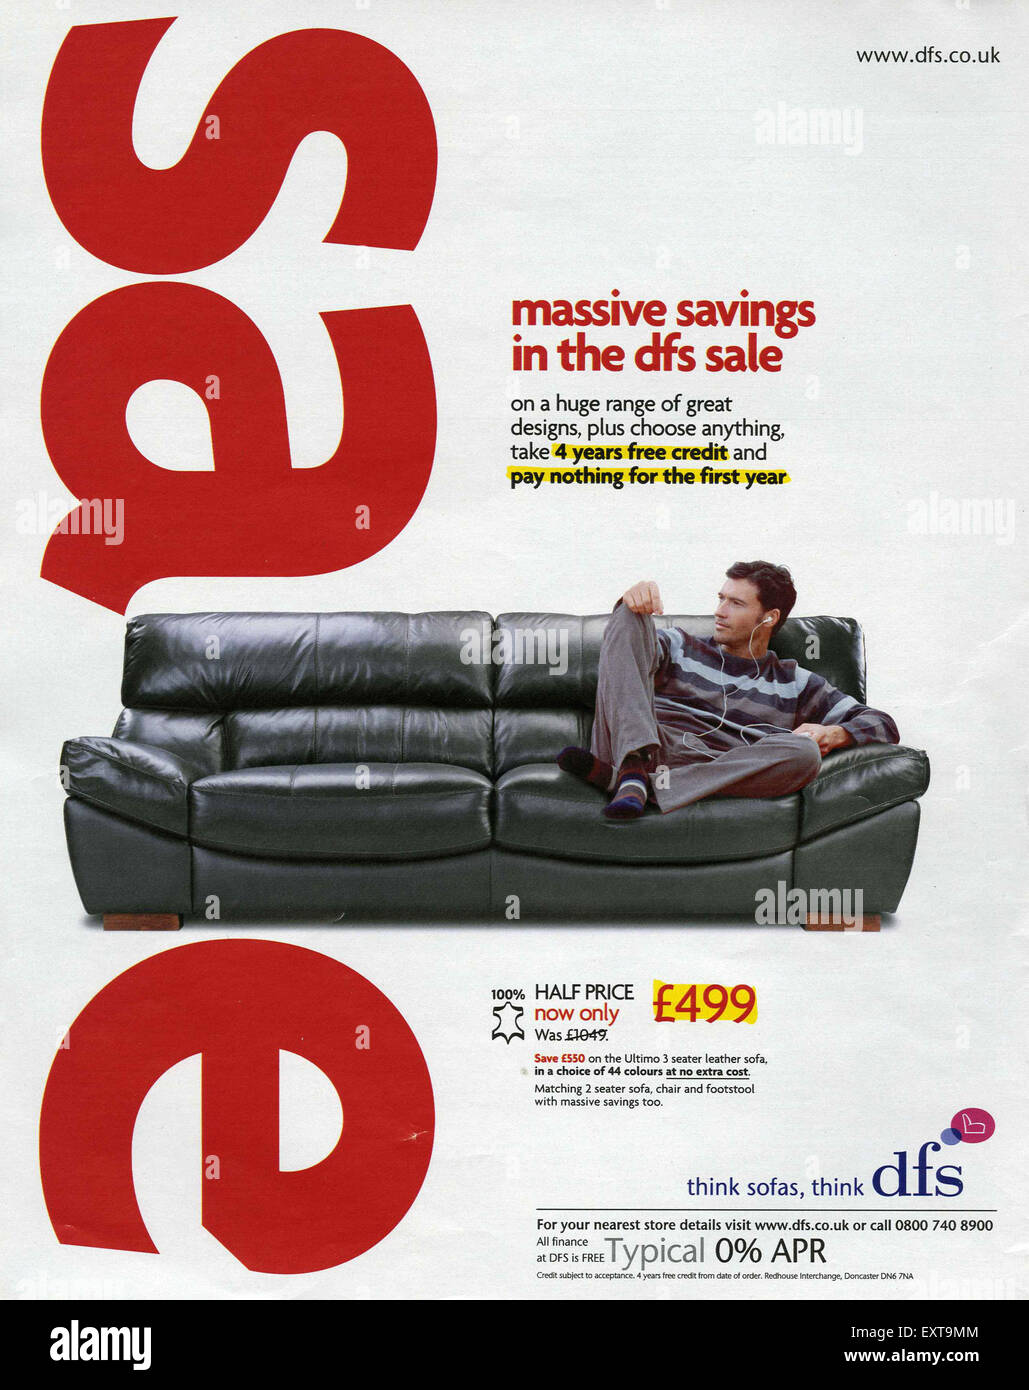 Dfs Advert High Resolution Stock Photography And Images Alamy